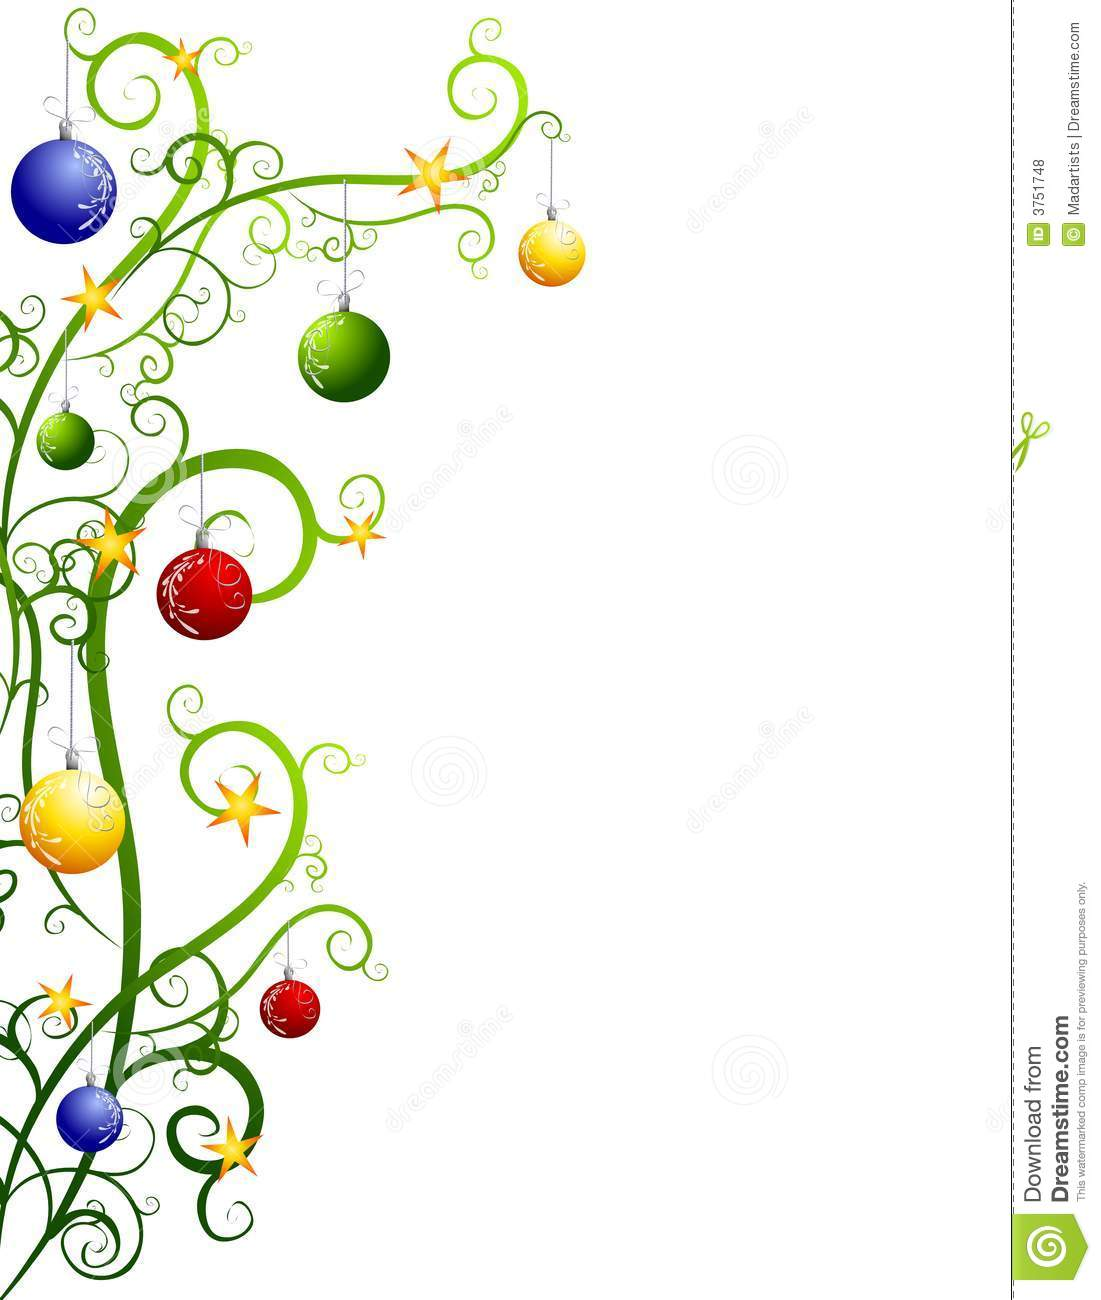 Abstract christmas tree border with ornaments stock